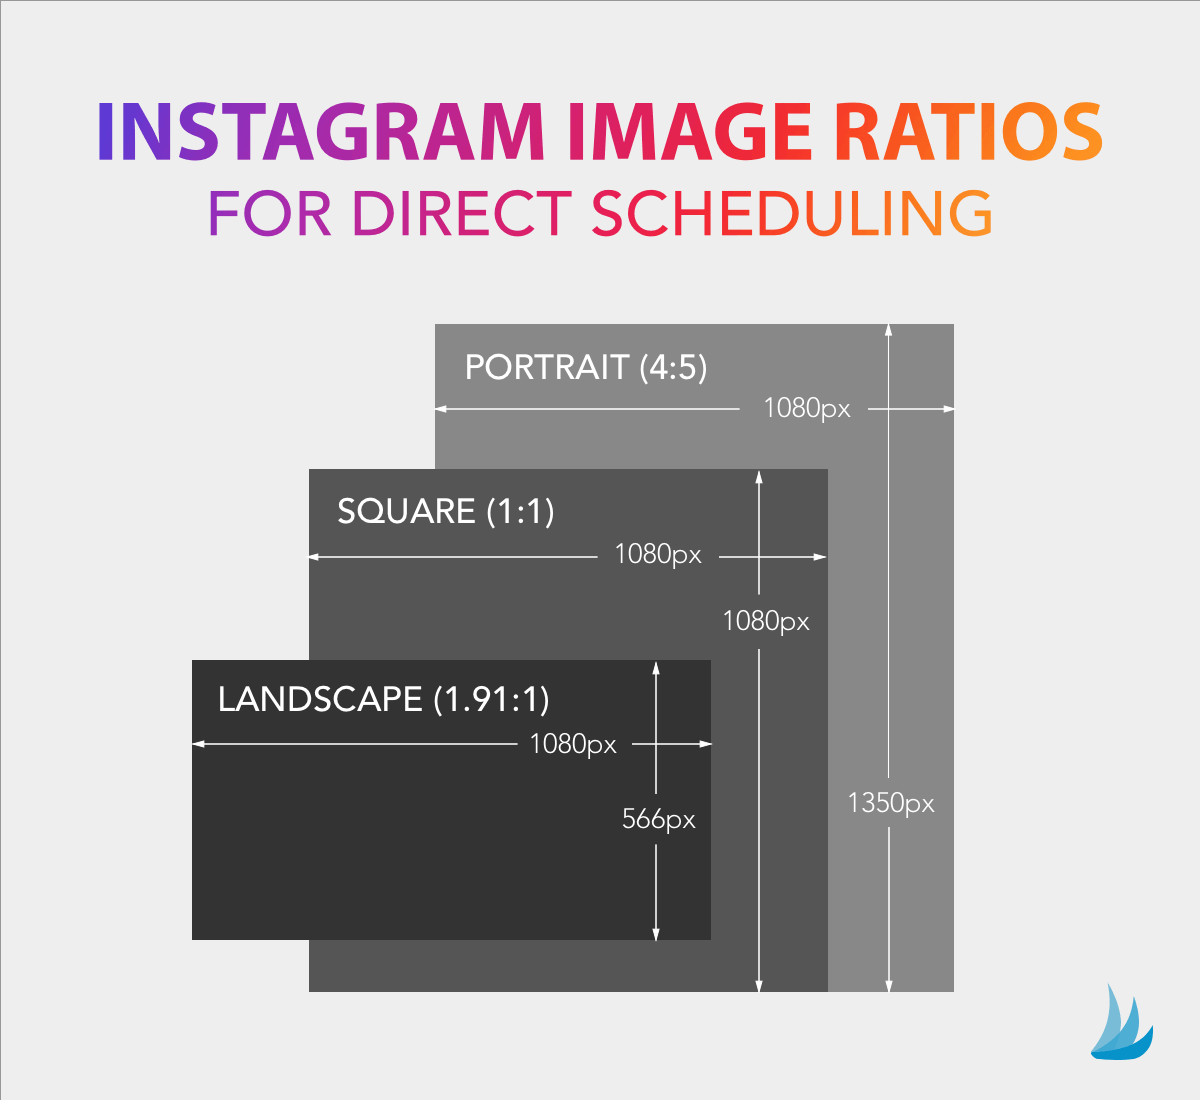 Instagram Image Ratios for Direct Scheduling